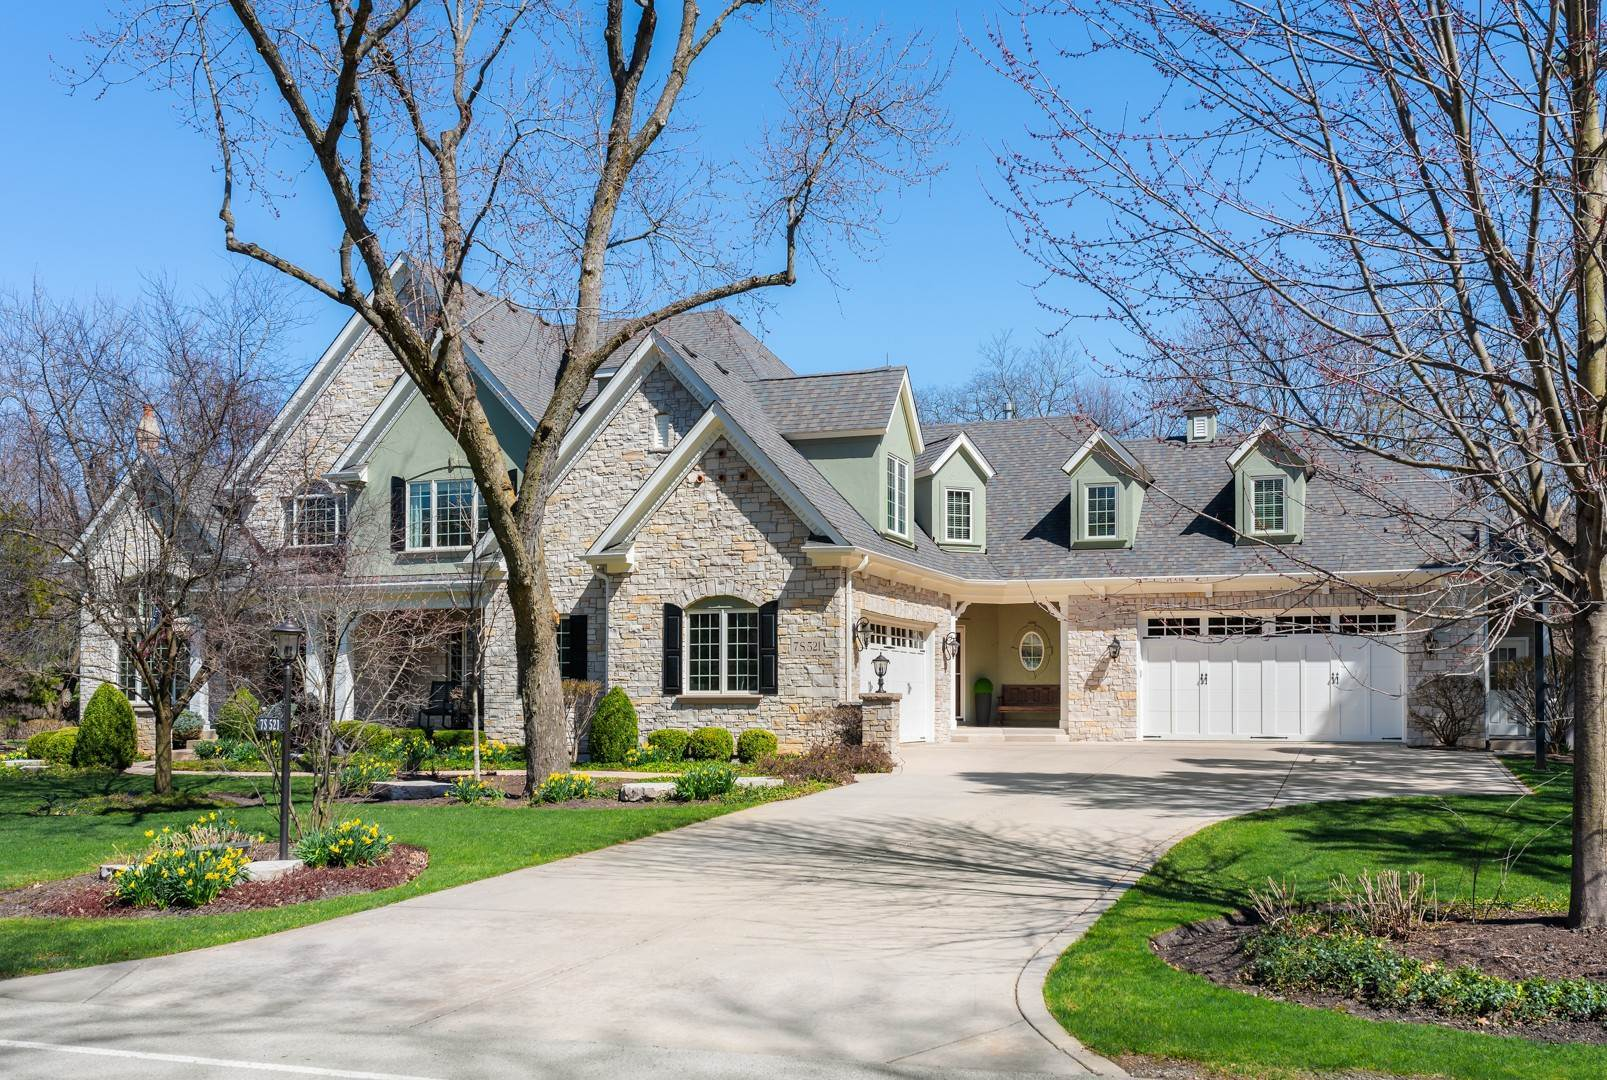 Single Family Homes for Sale at 7s521 Arbor Drive Naperville, Illinois 60540 United States